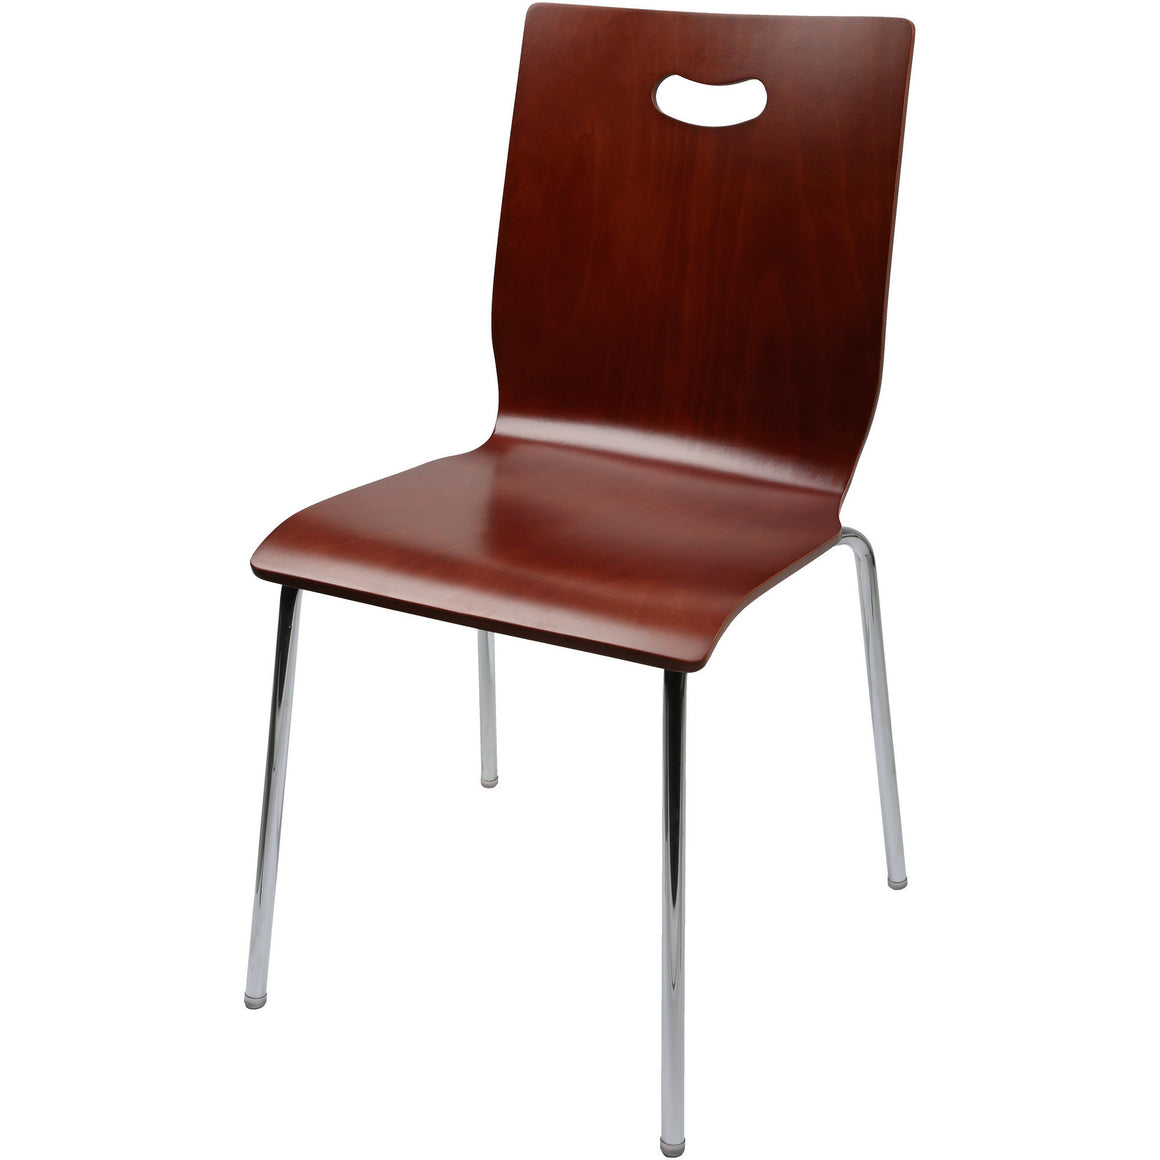 WoodForm 410, Chairs, Cammac, - Cammac